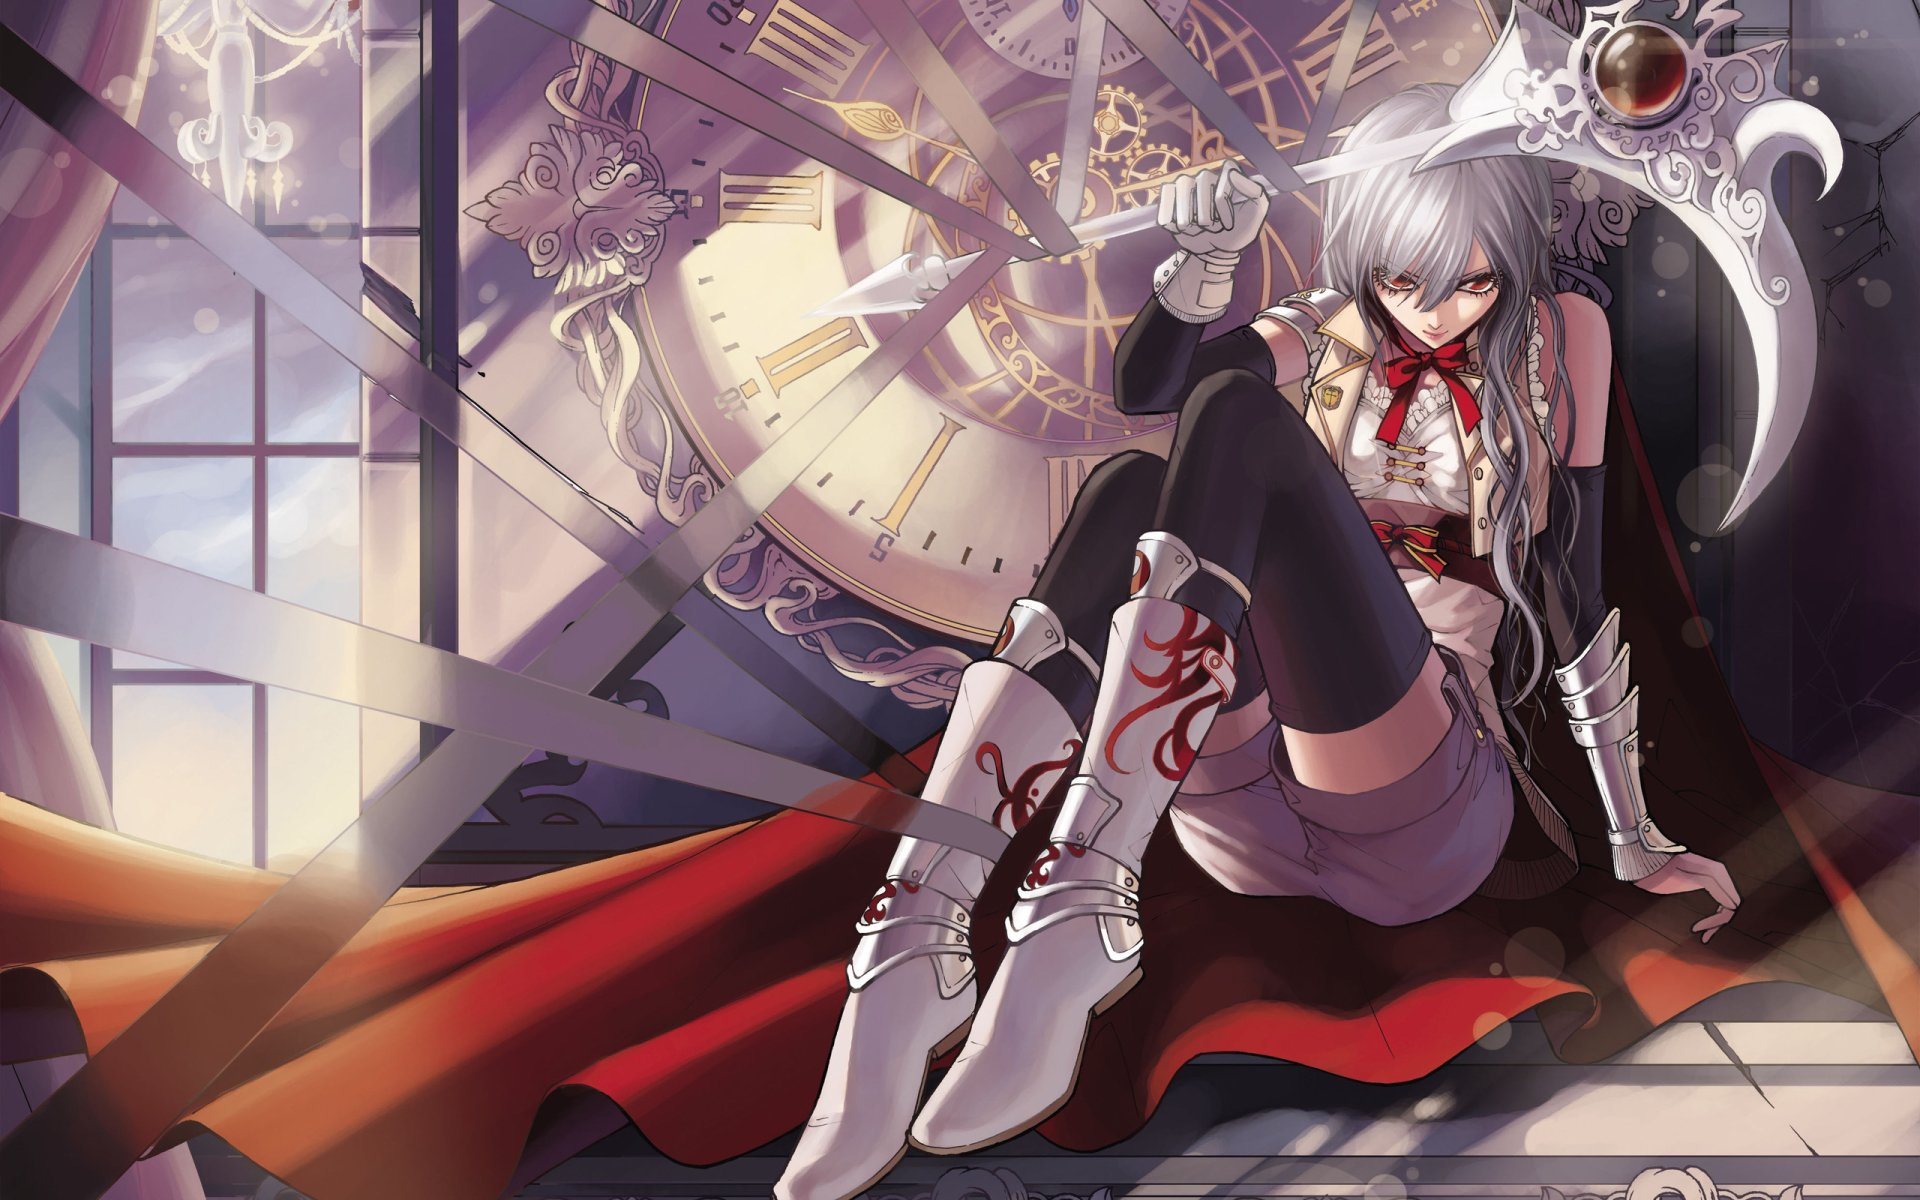 动漫 - 原创  女孩 Red Eyes White Hair Scythe Thigh Highs 时钟 Shorts Cape Original (Anime) 壁纸